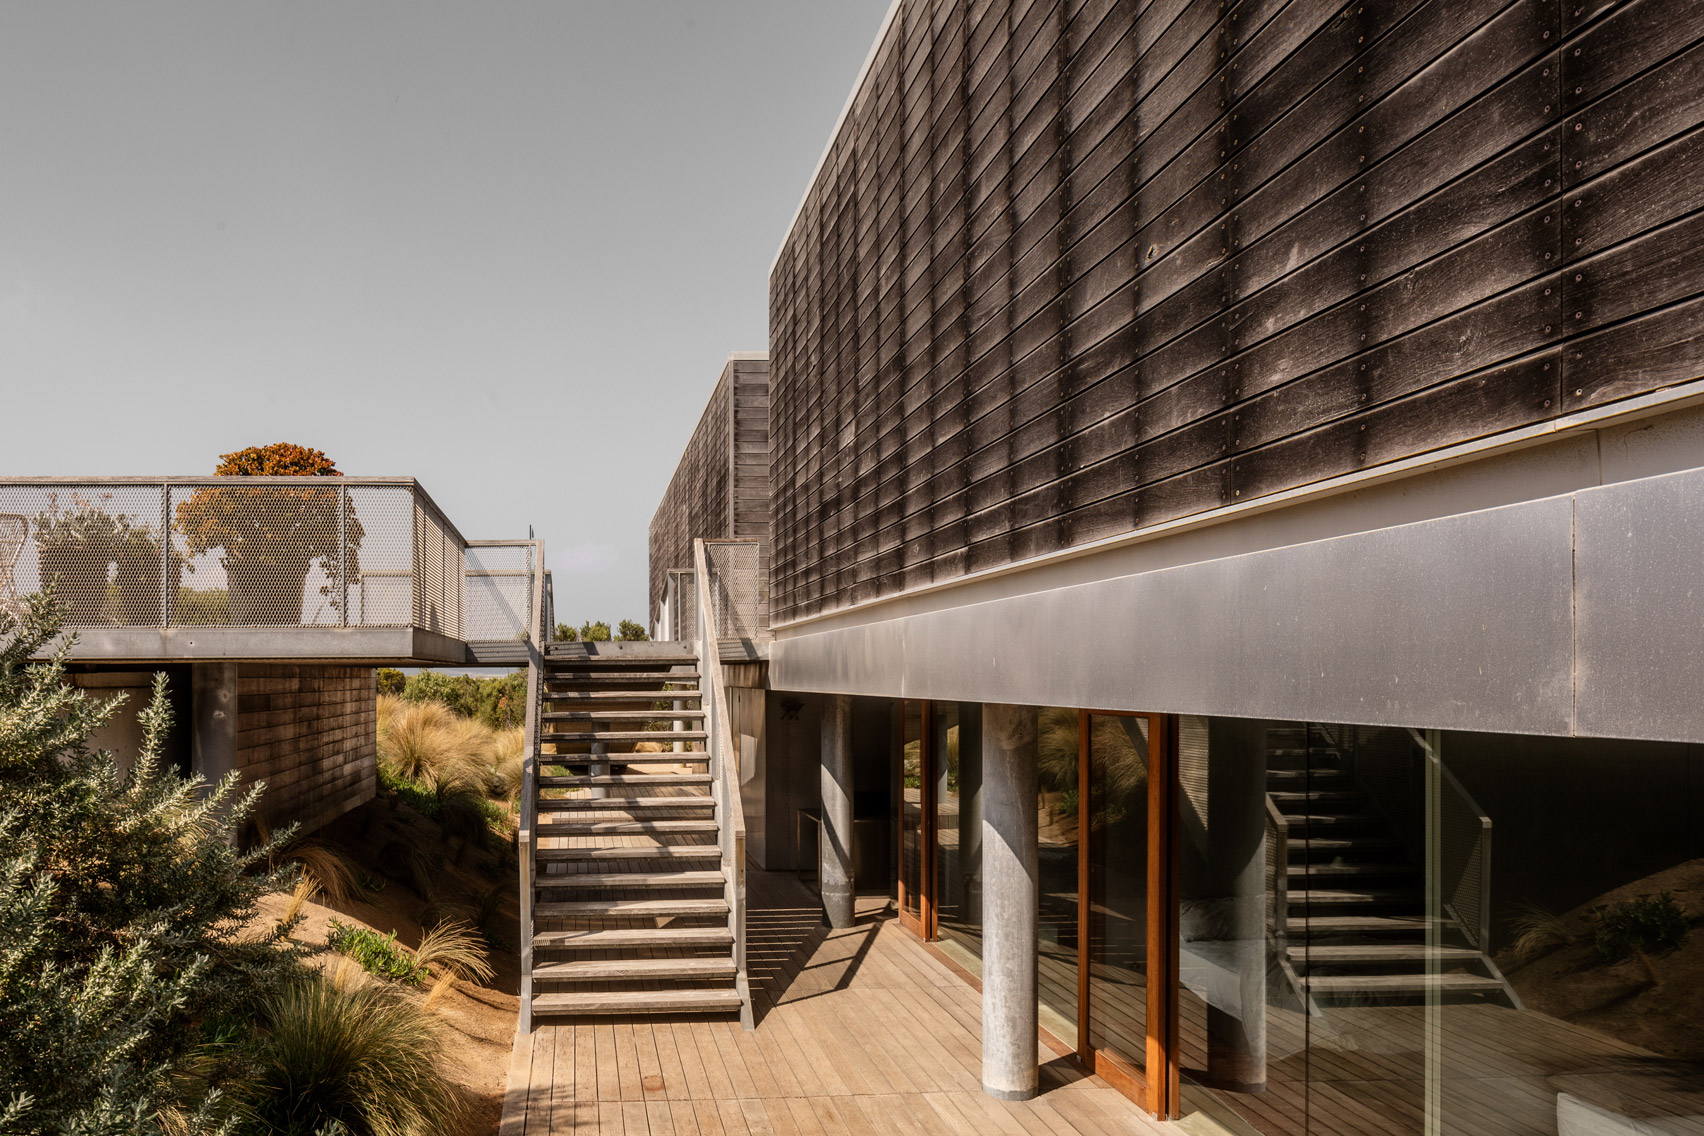 St Andrews Beach Villa, architecture studio, Woods Bagot, weathered seaside house, Australia, Nik Karalis, Mornington, Peninsula, five-bedroom villa, pool, cabana, glasshouse, full-width deck, sea, bestofview, landscape, nature, tophouse, relax, chill out, wood, residence, dreamhome